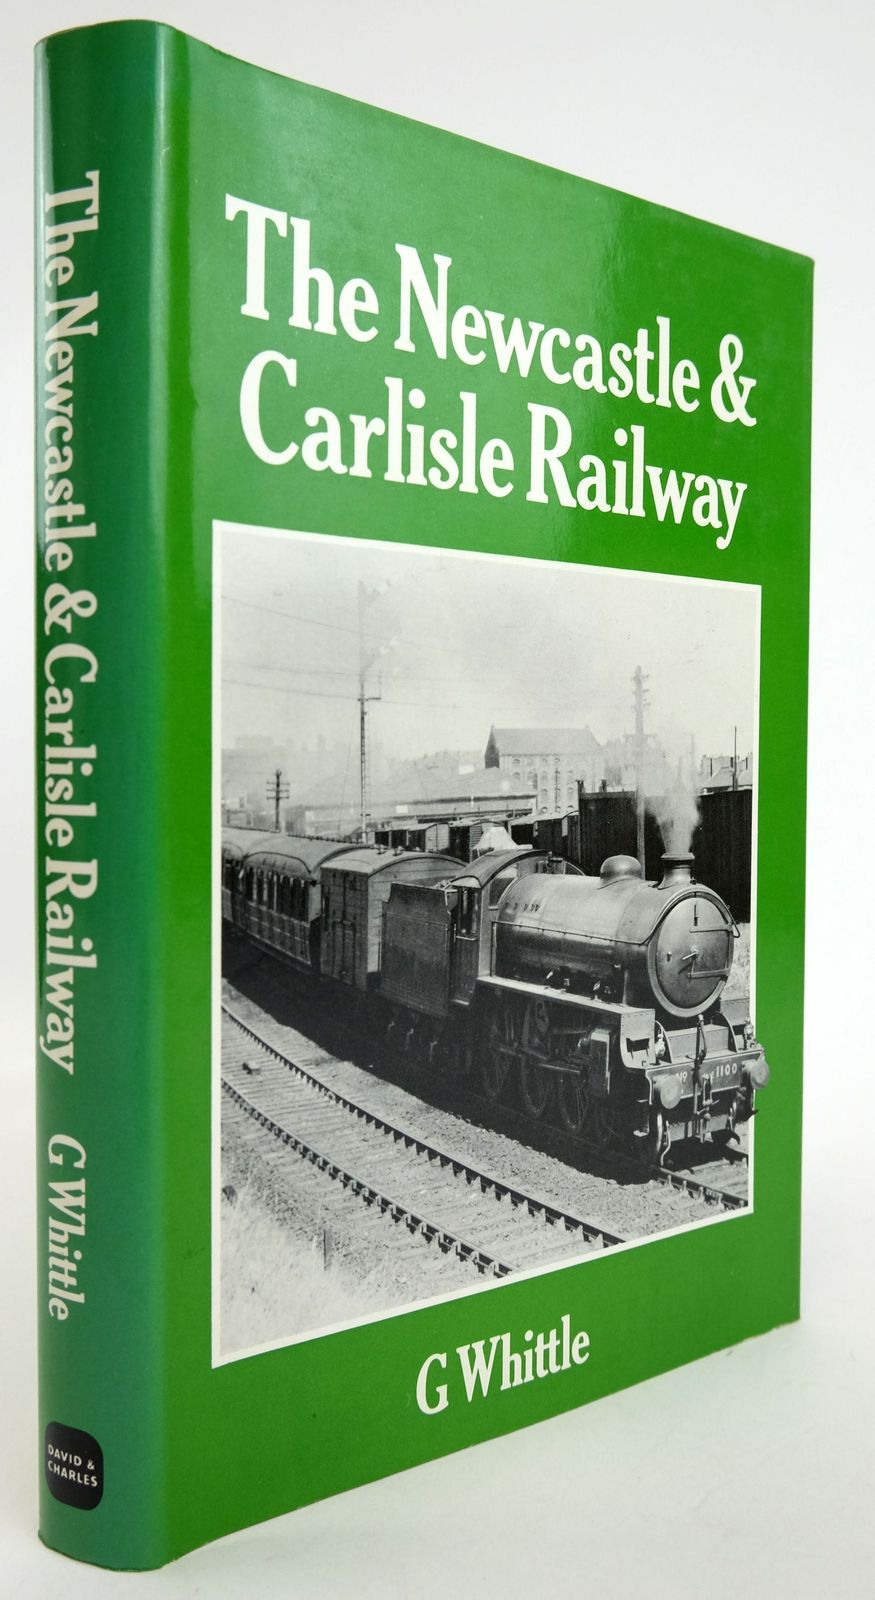 Photo of THE NEWCASTLE & CARLISLE RAILWAY written by Whittle, G. published by David & Charles (STOCK CODE: 1820113)  for sale by Stella & Rose's Books